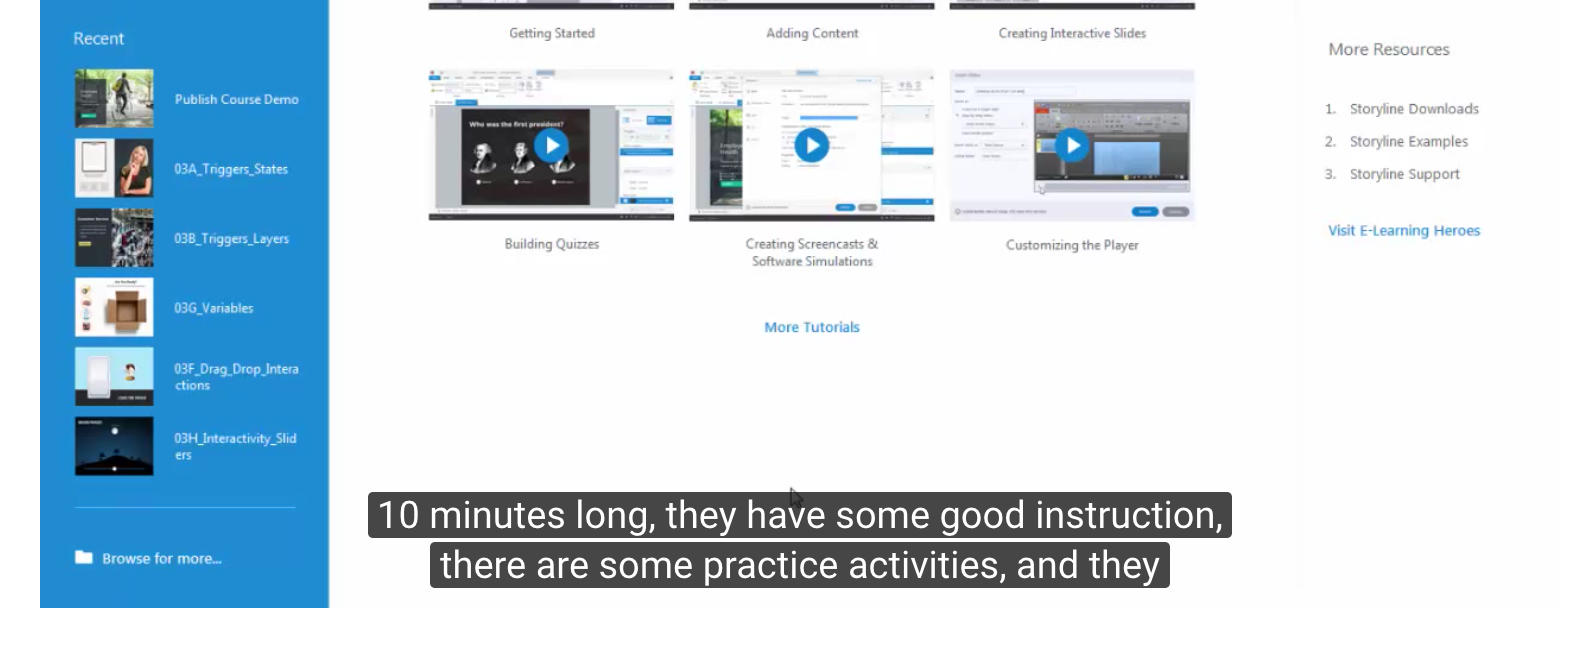 Closed captions on video tutorials - Articulate Storyline